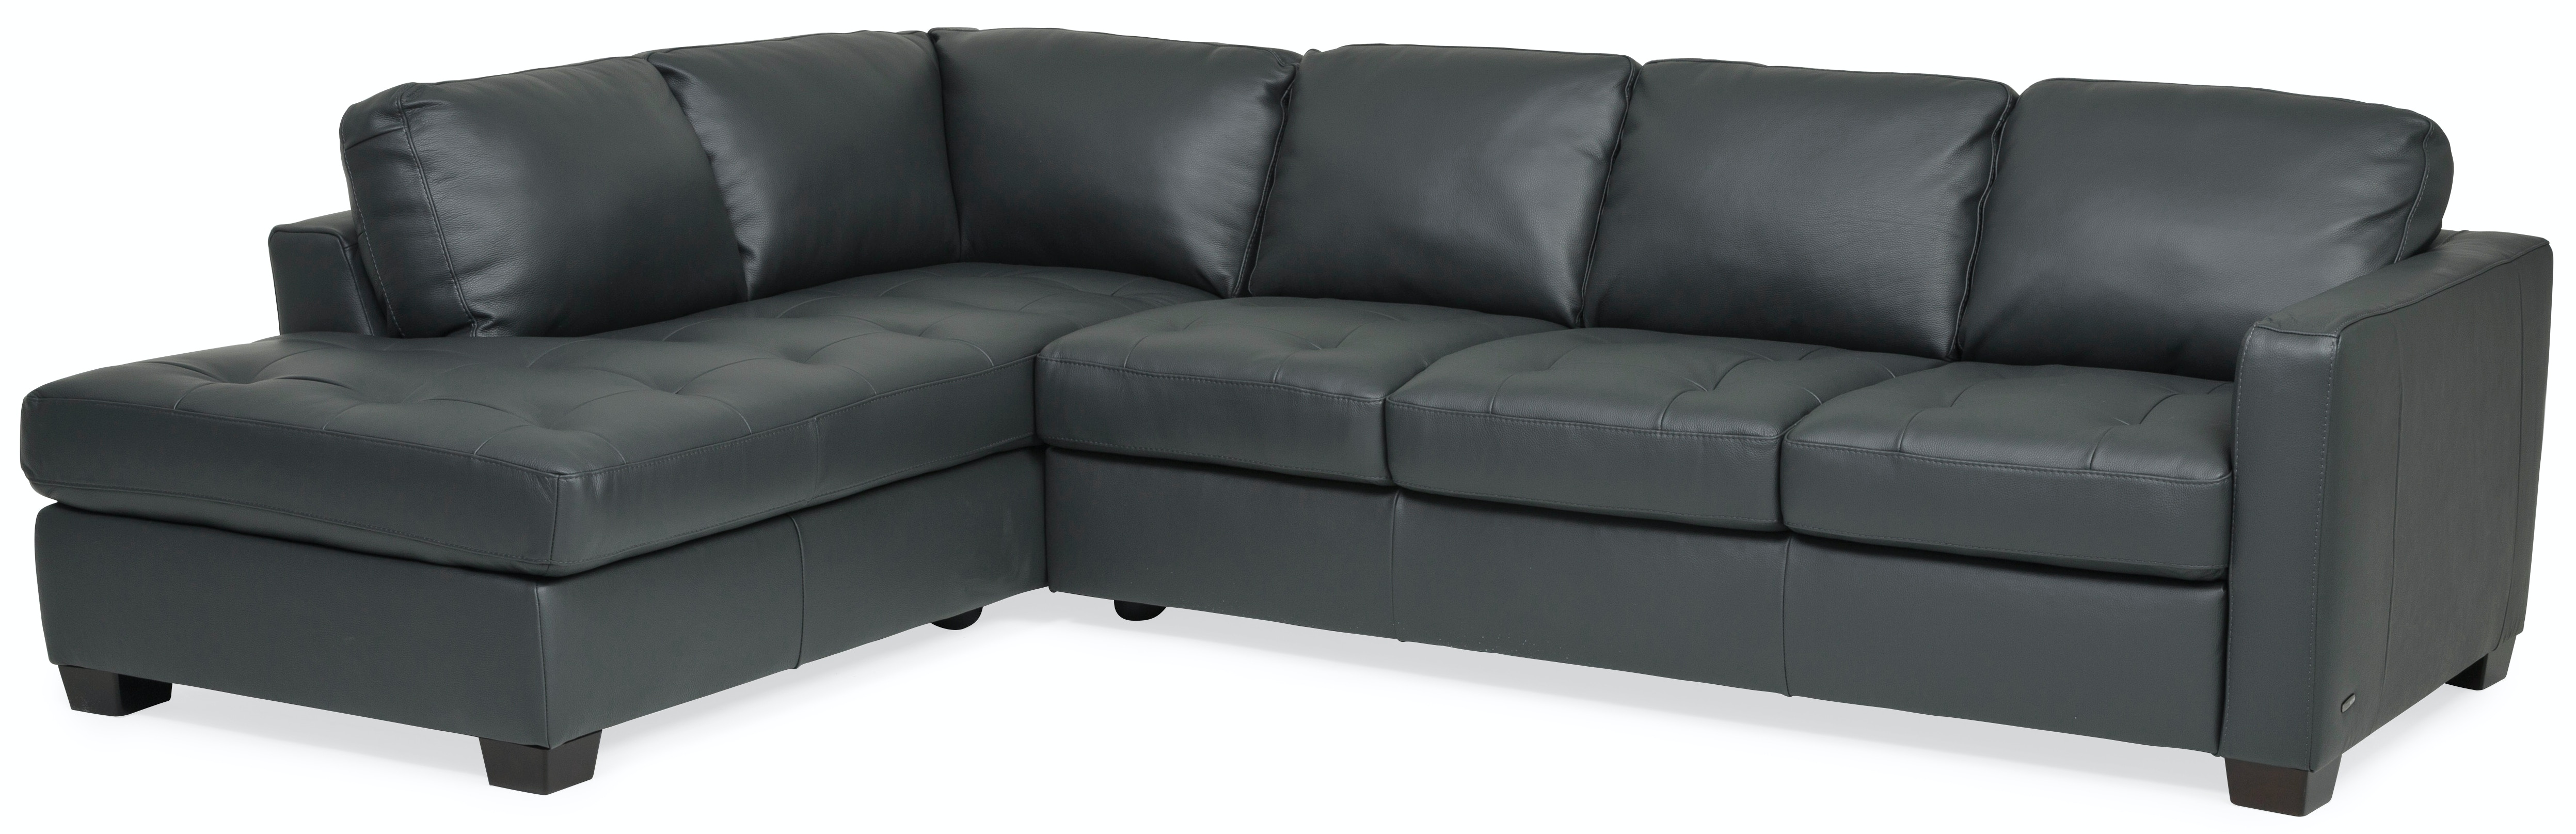 Denver Leather LAF Chaise Sectional   ANTHRACITE